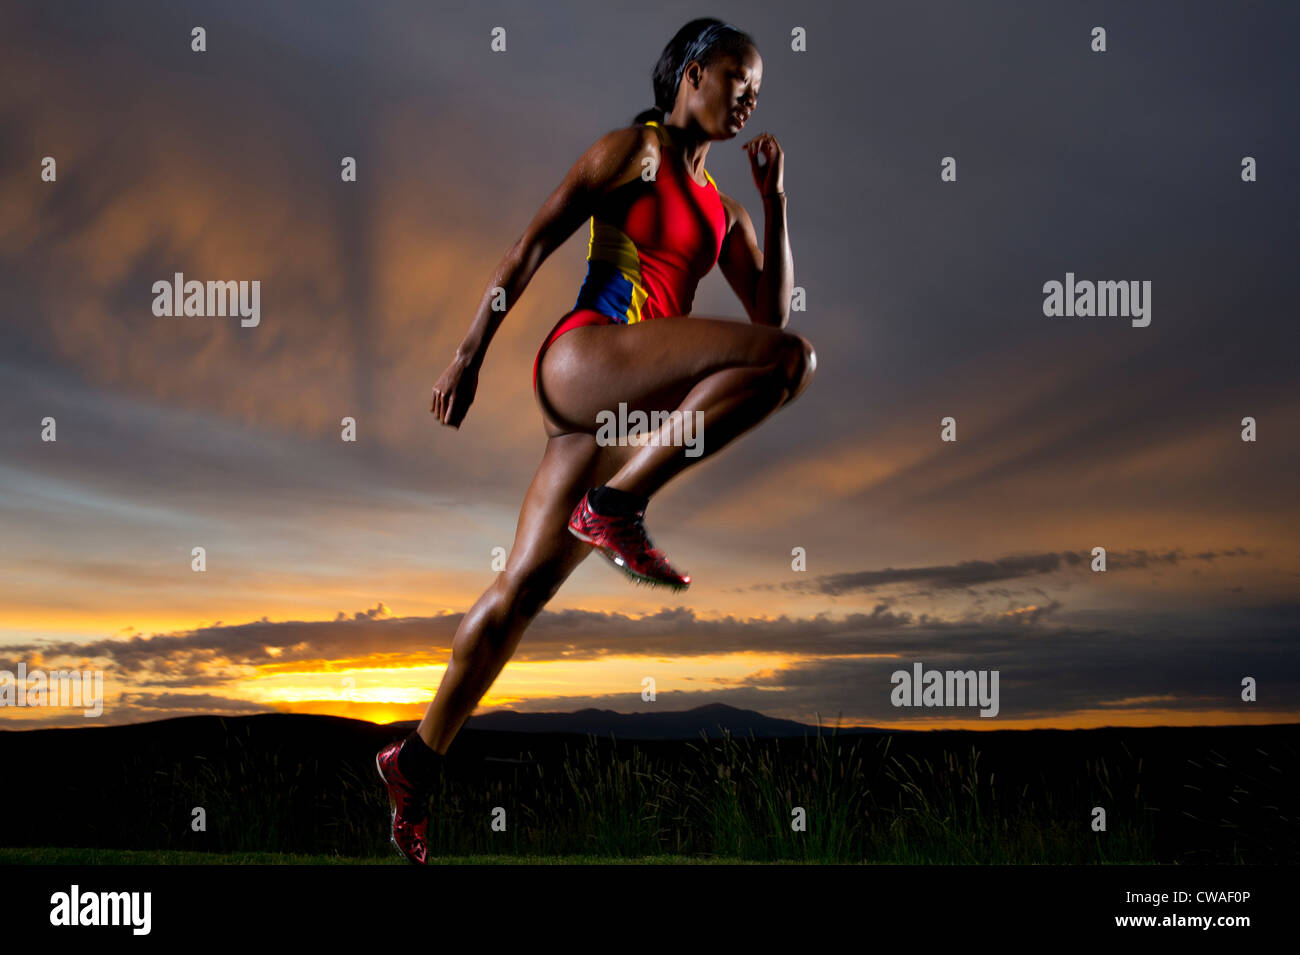 Athlete in mid air against sunset Stock Photo